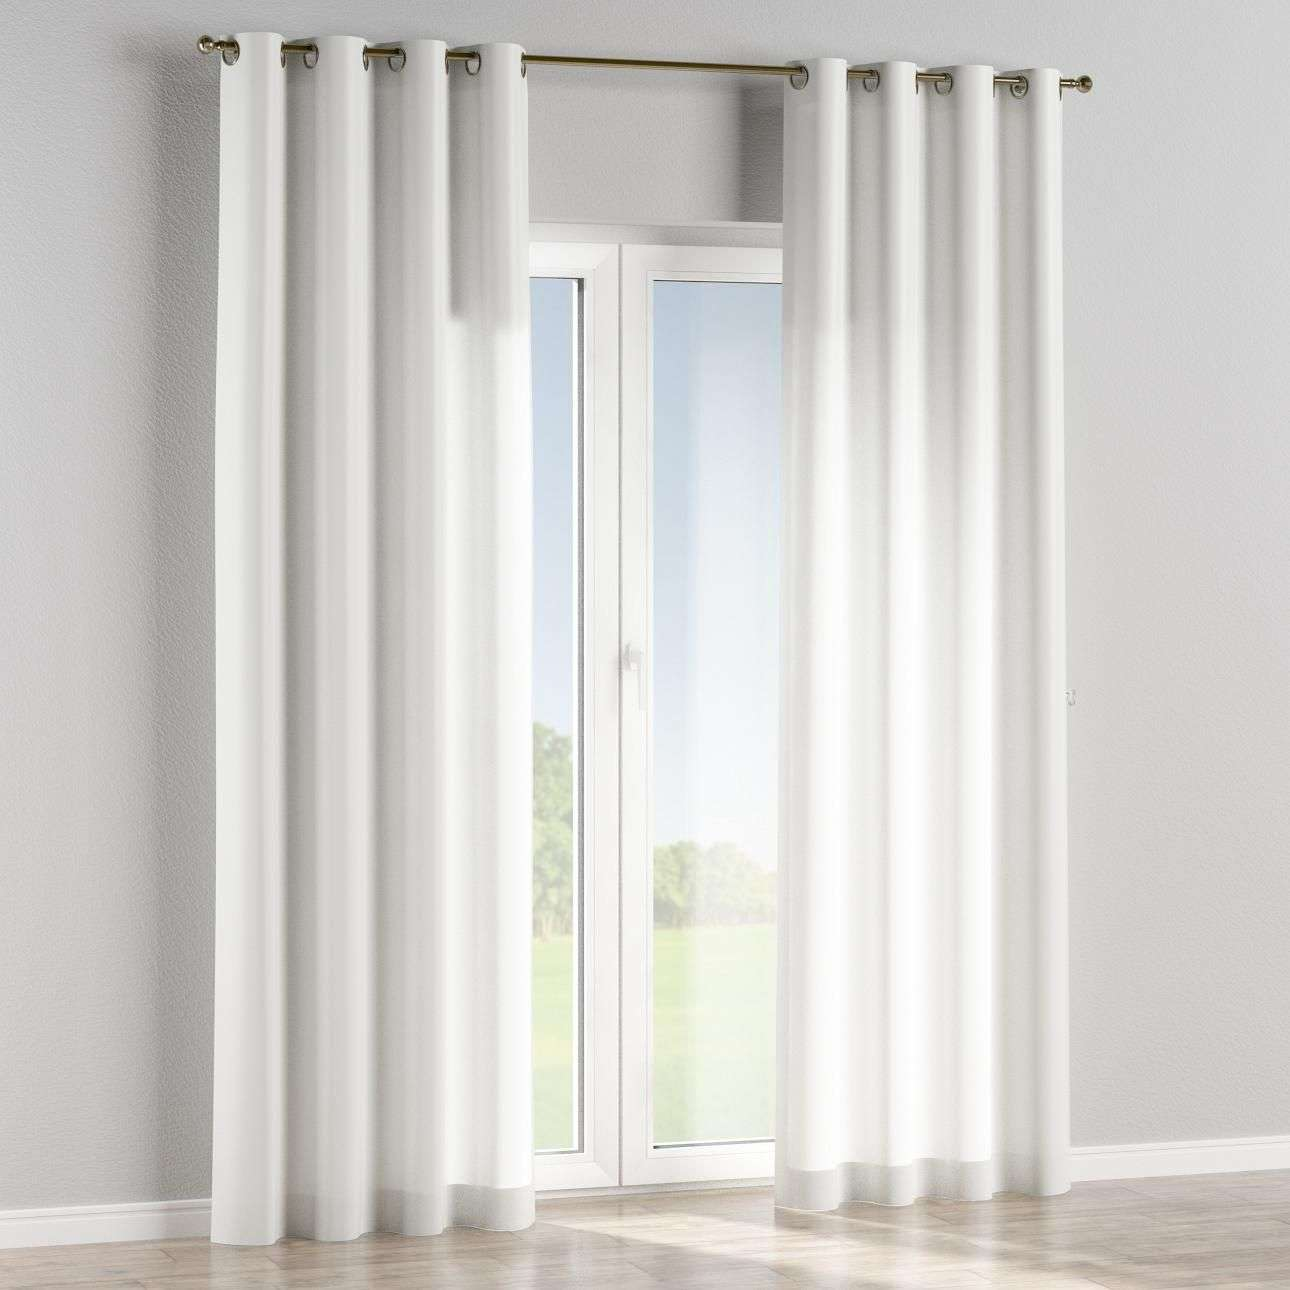 Eyelet curtains in collection Aquarelle, fabric: 140-68